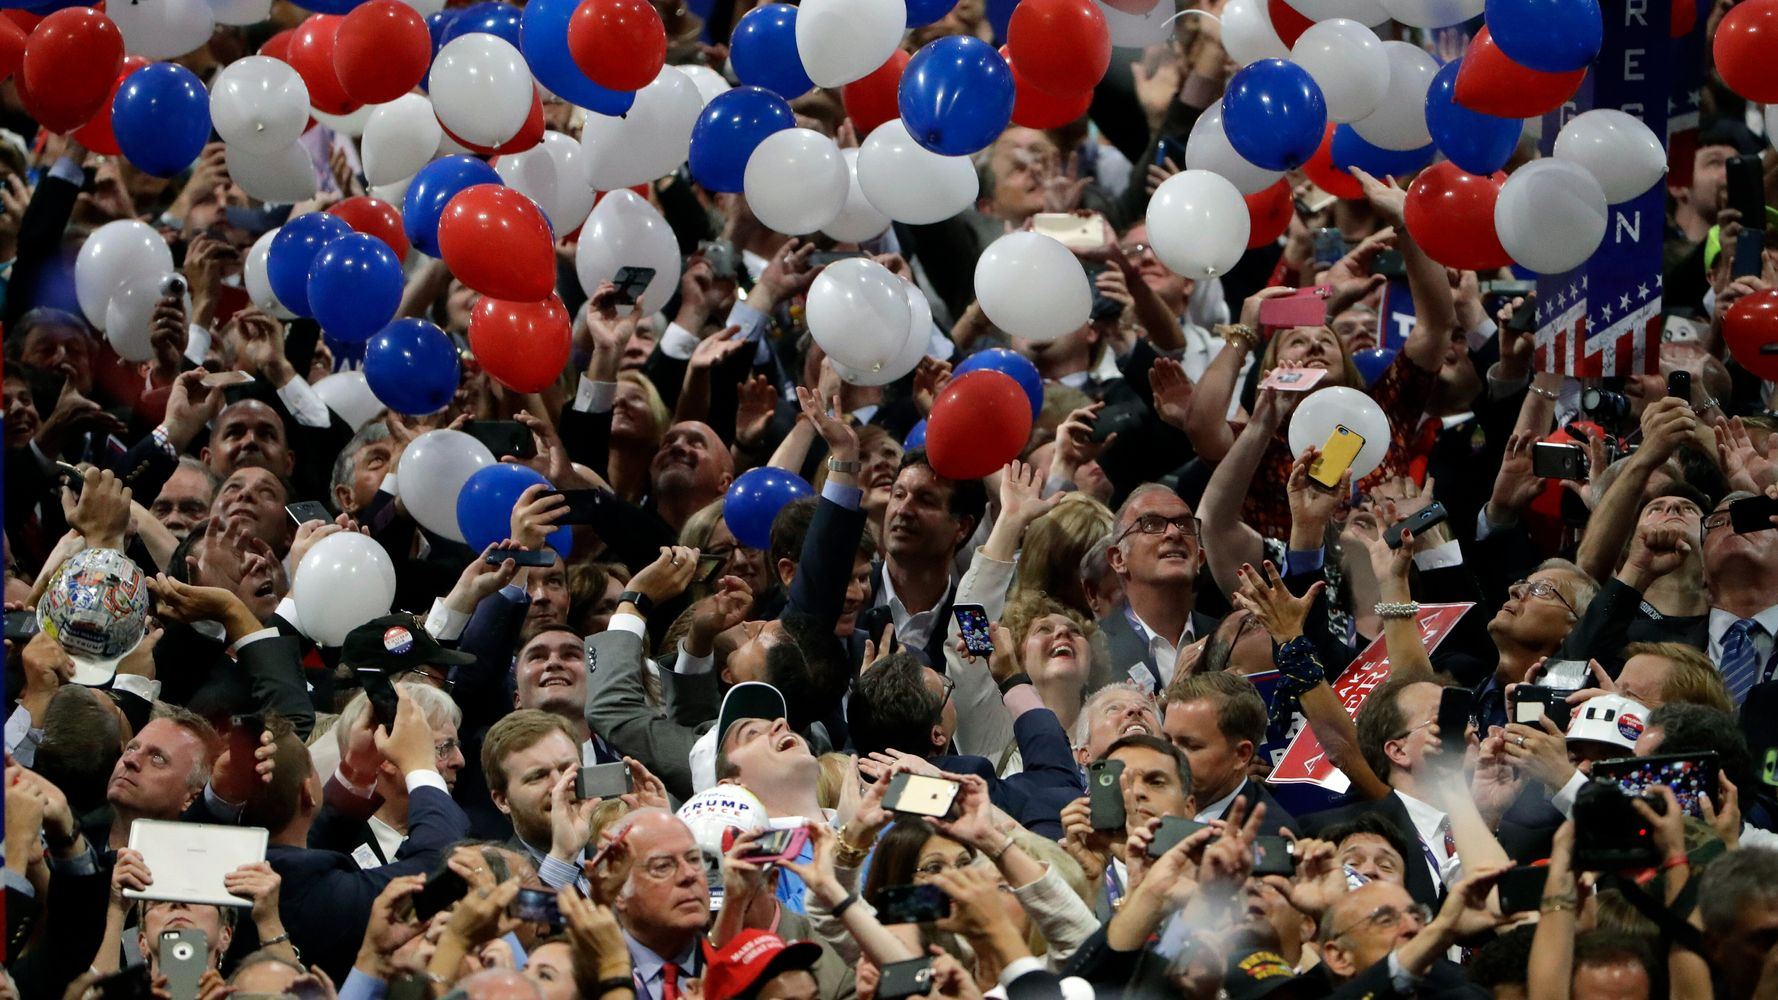 Republican National Convention Says Press Not Welcome, Blames COVID-19 1